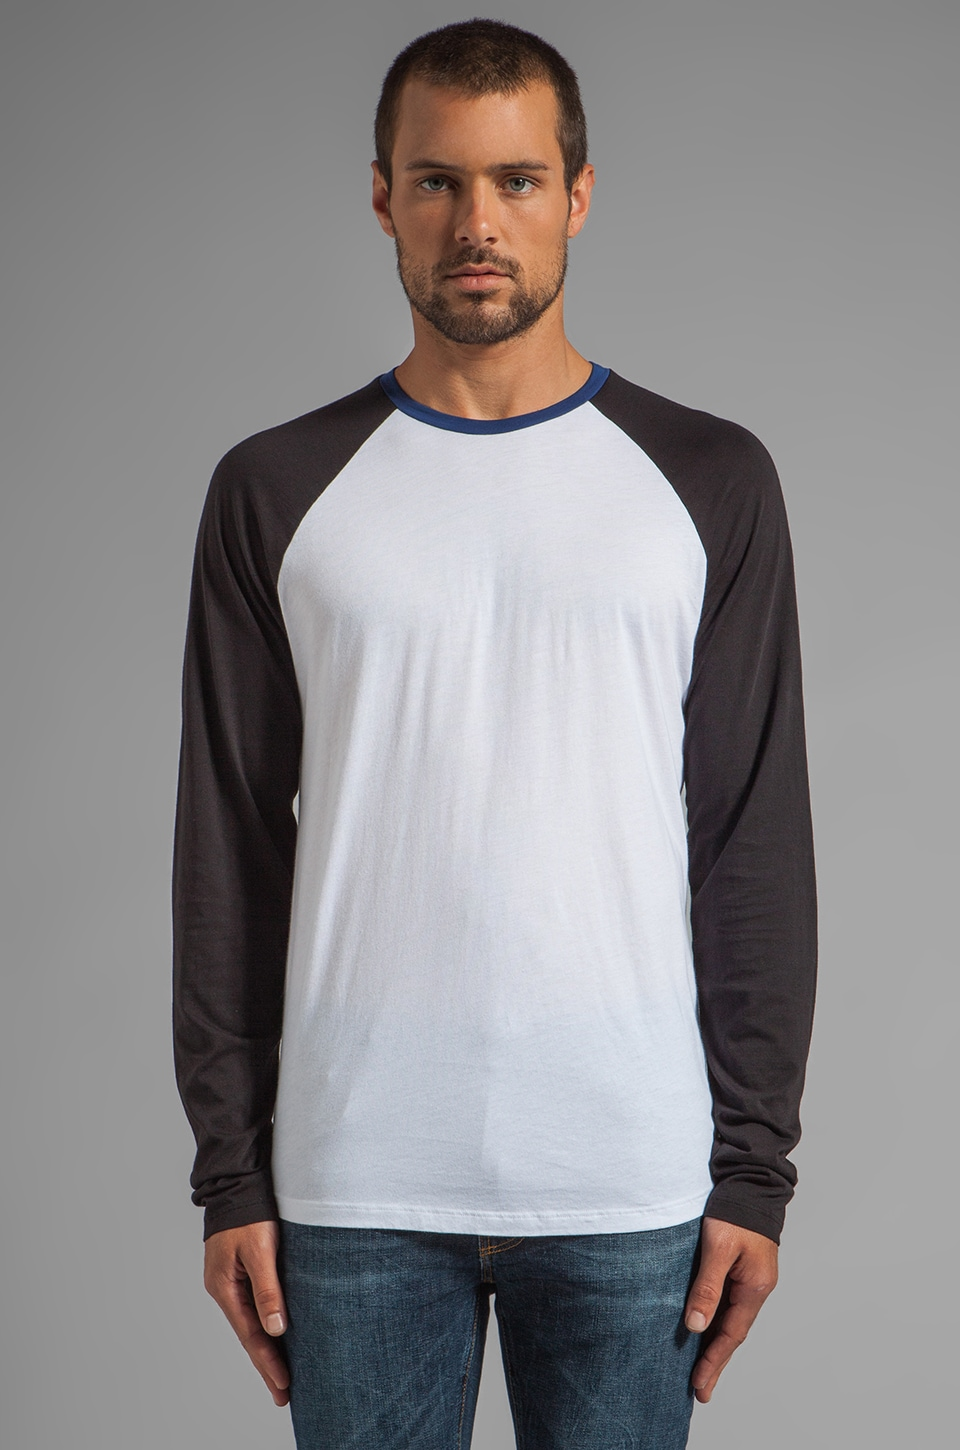 Velvet by Graham & Spencer Phillipe Color Block Tee in Adriatic